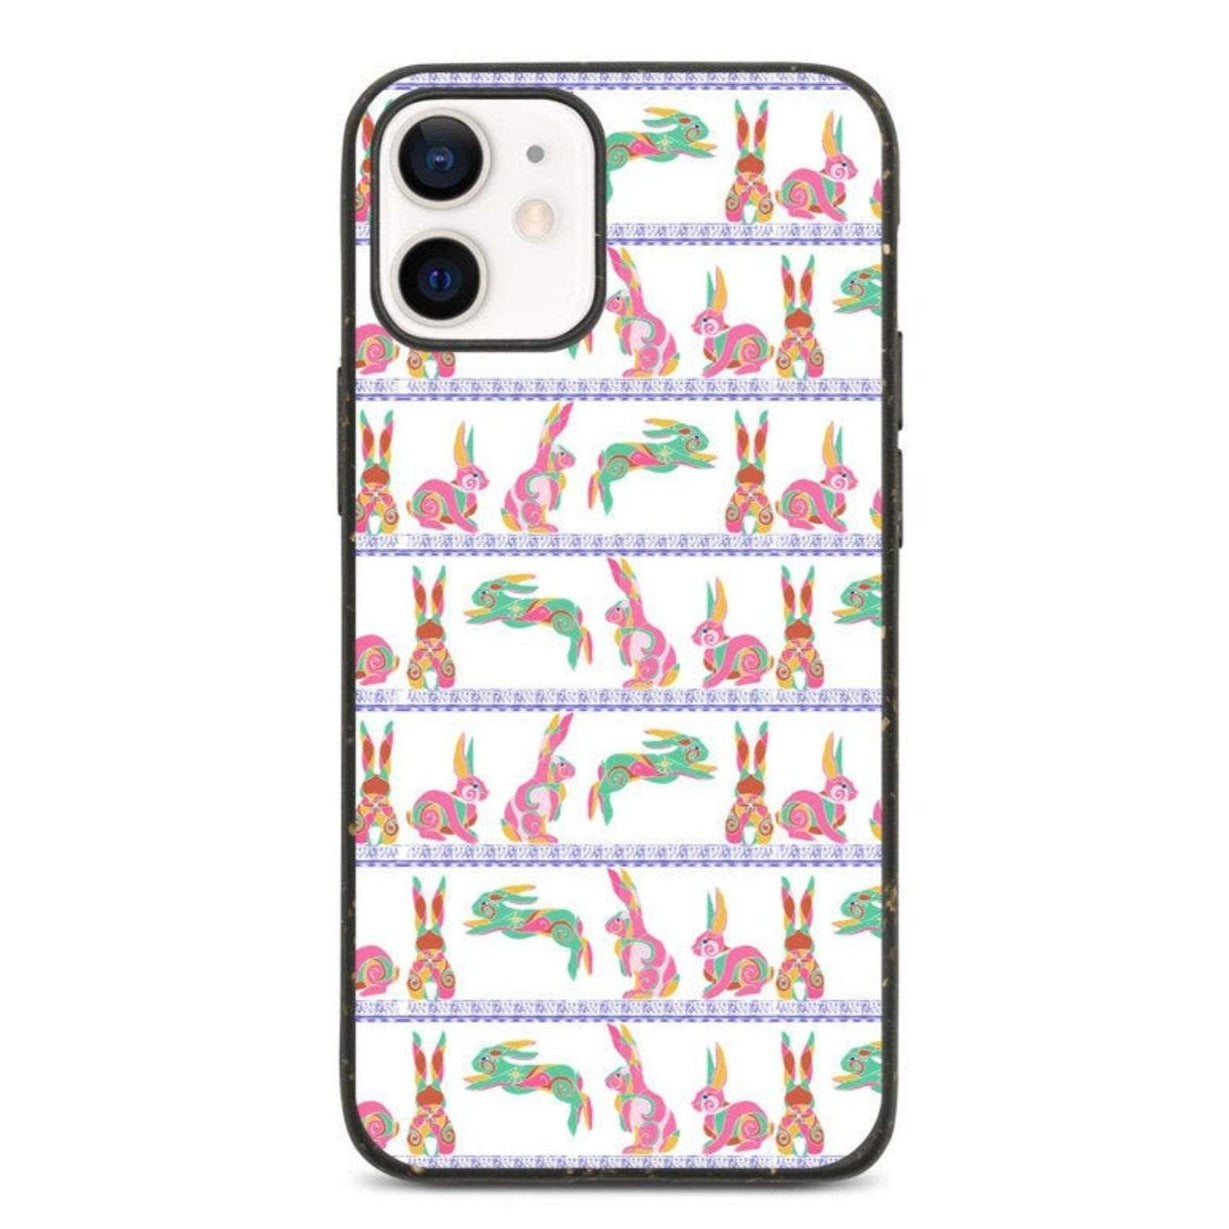 Folk Bunny - Biodegradable Phone Cases